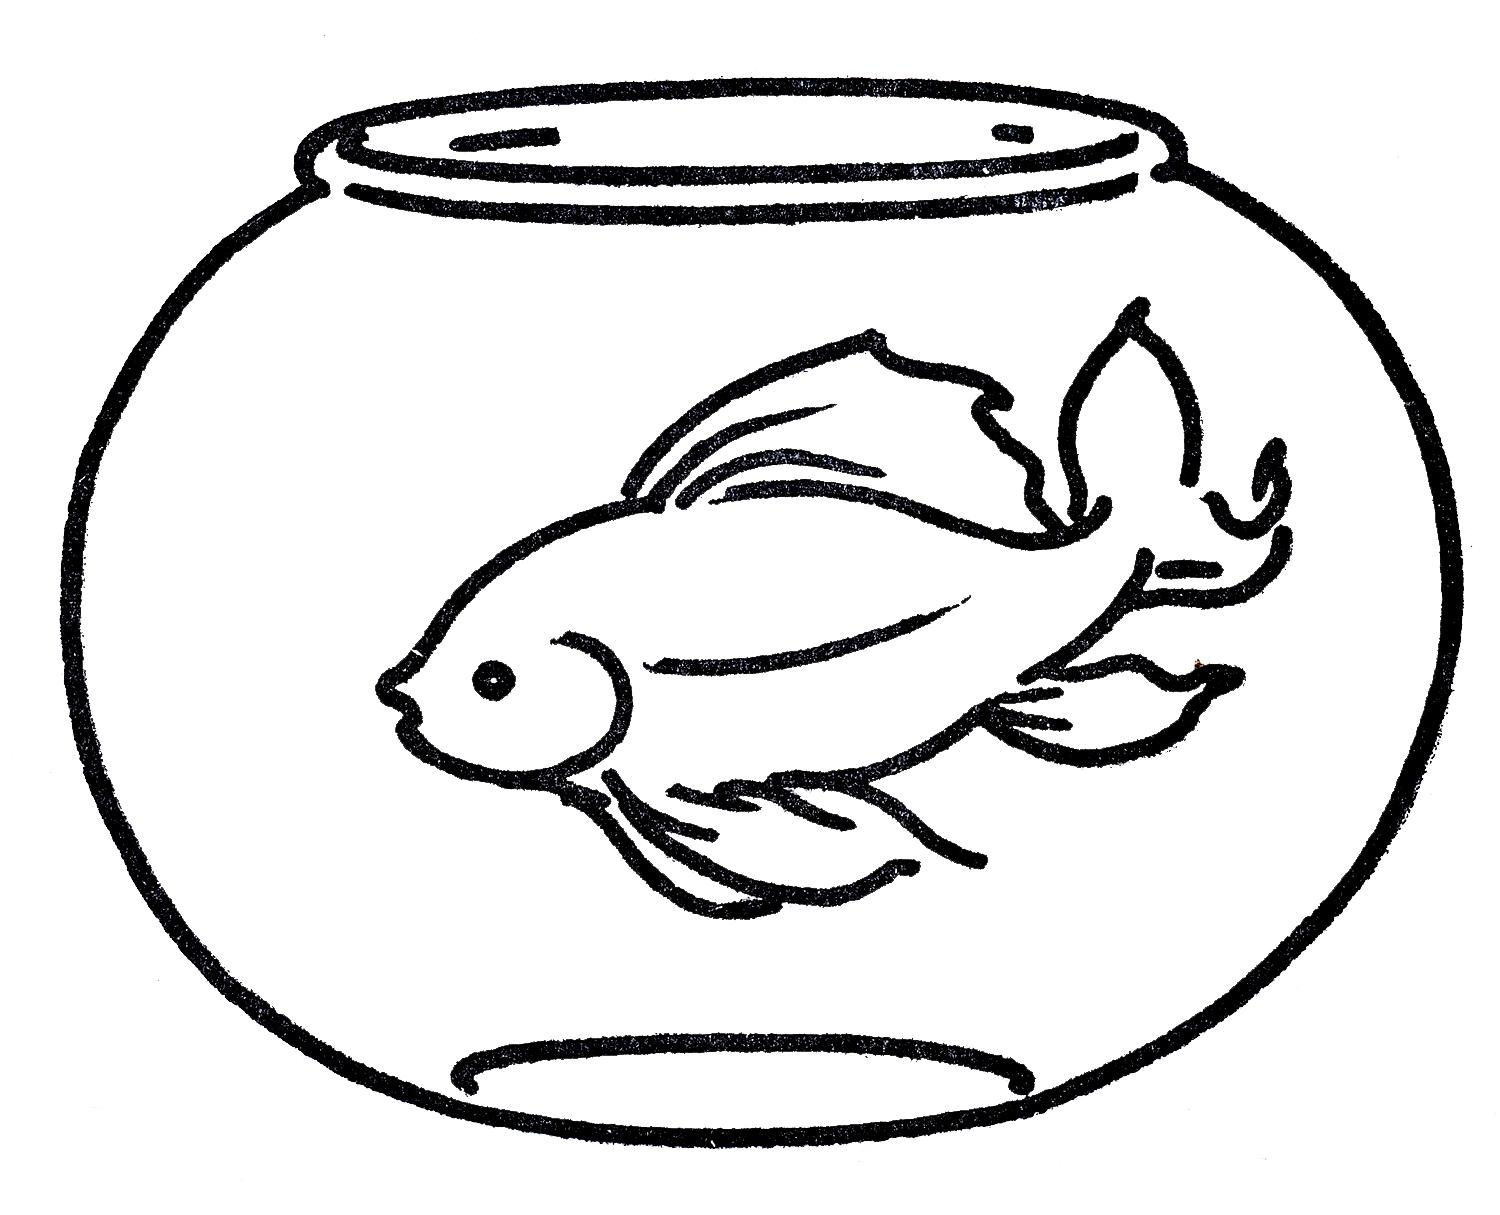 bowl fish black and white clipart